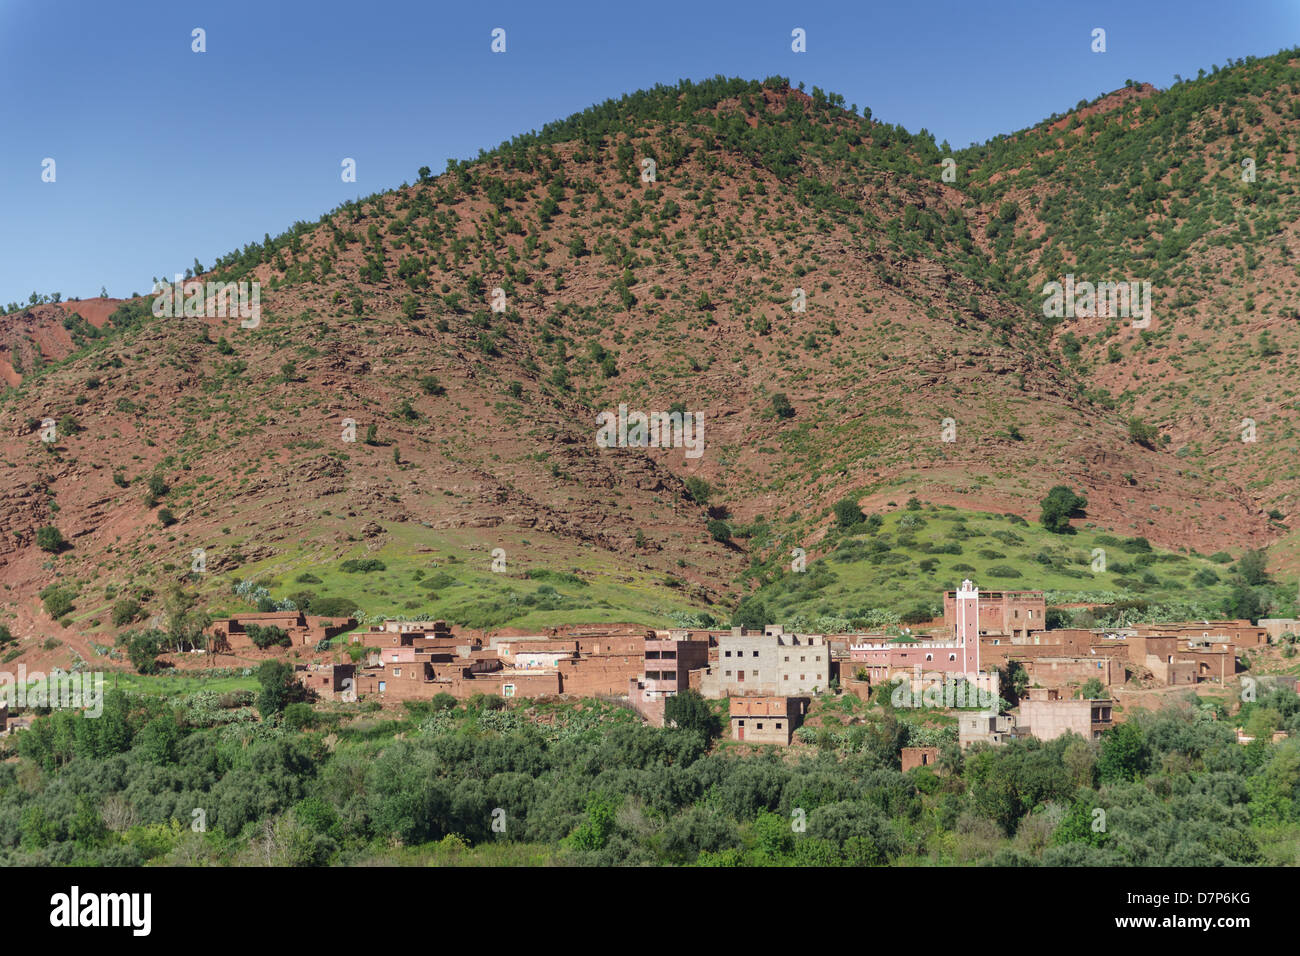 Morocco, Marrakesh - Ourika river valley, a Berber village with mosque. - Stock Image